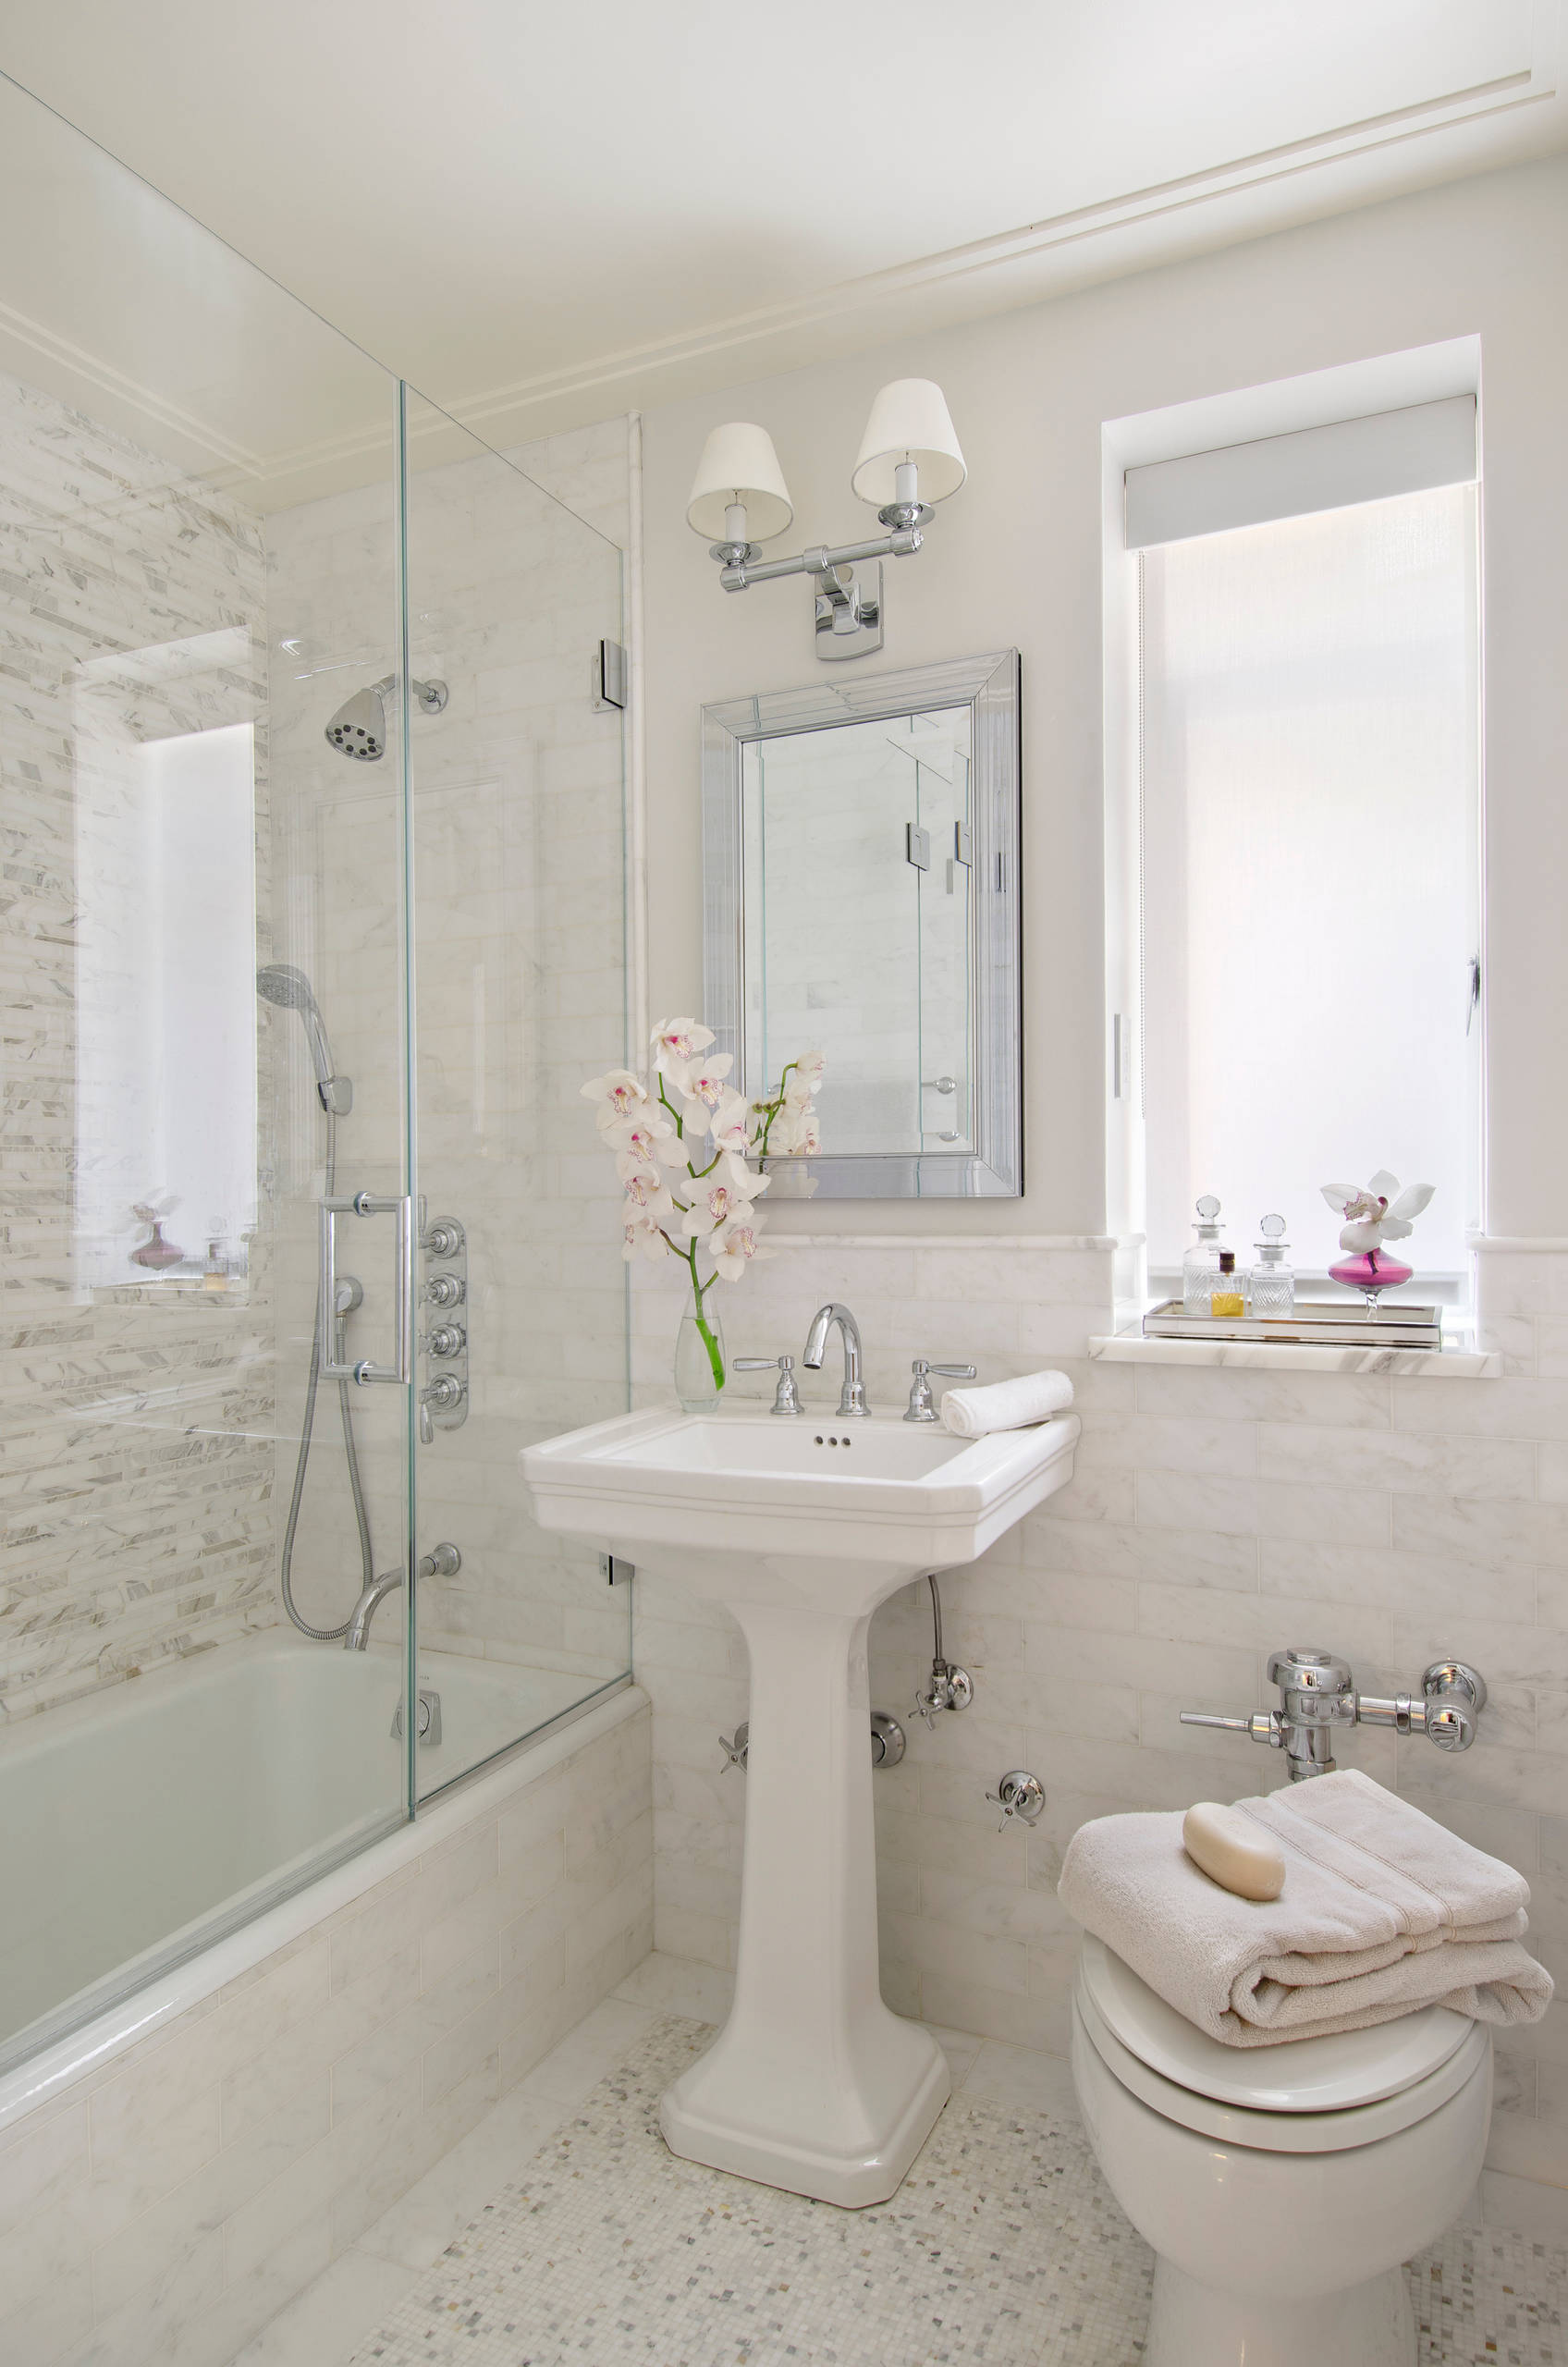 75 Beautiful Small Bathroom Pictures Ideas October 2020 Houzz